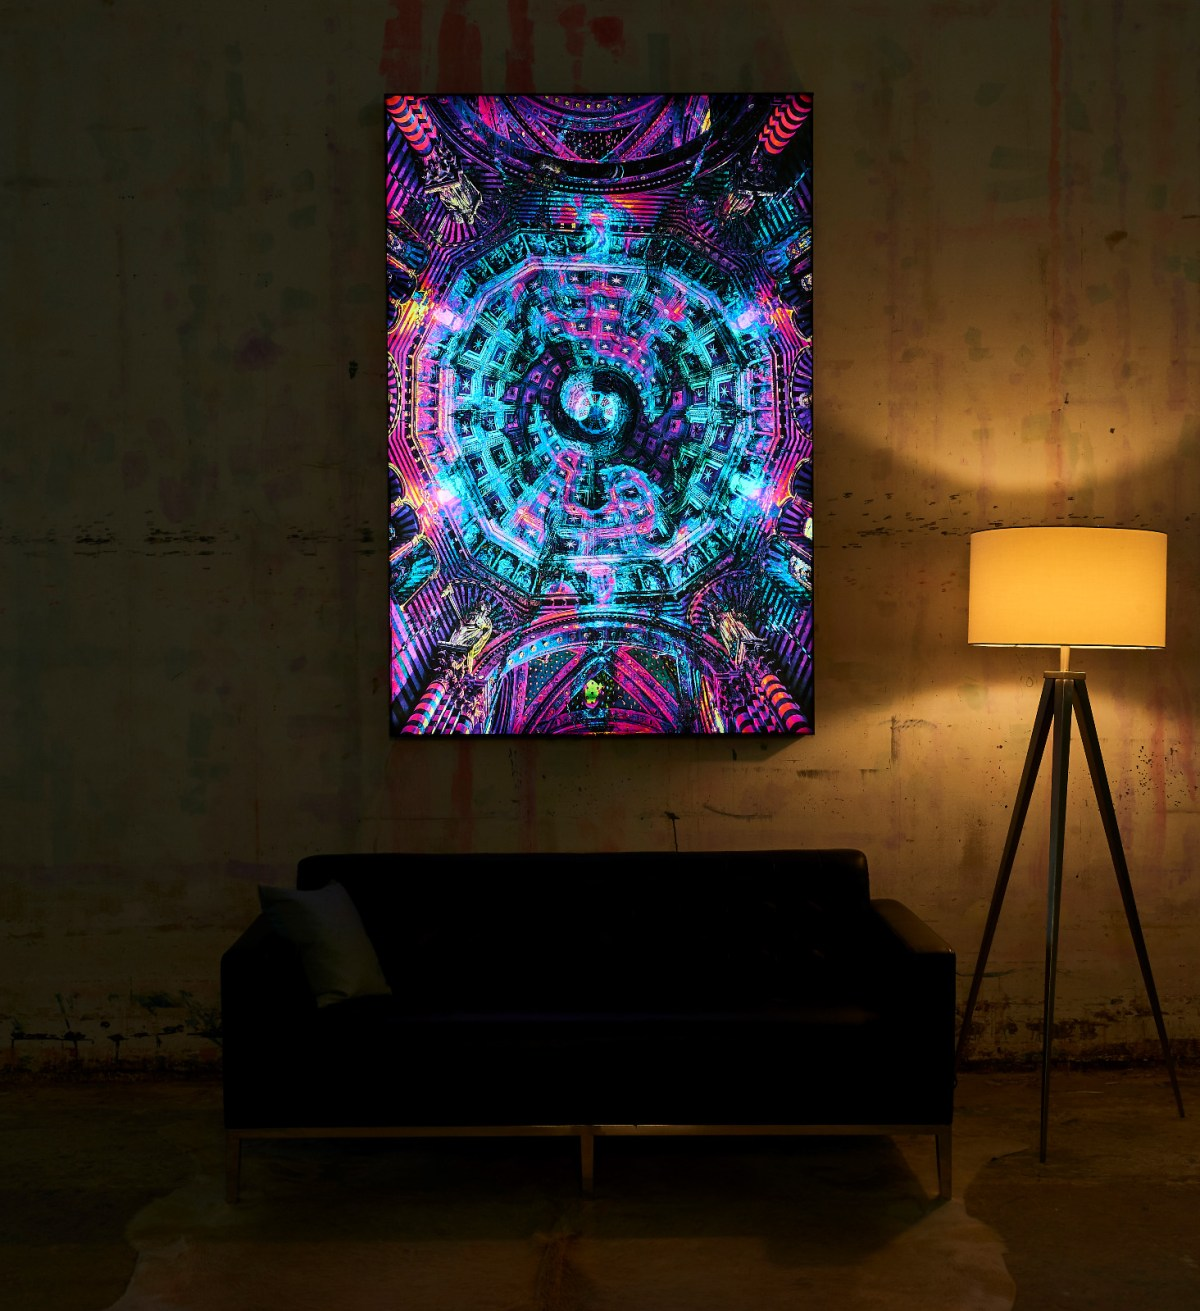 Big Naked Wall Creates A New Art Category with Backlit Frames Art -